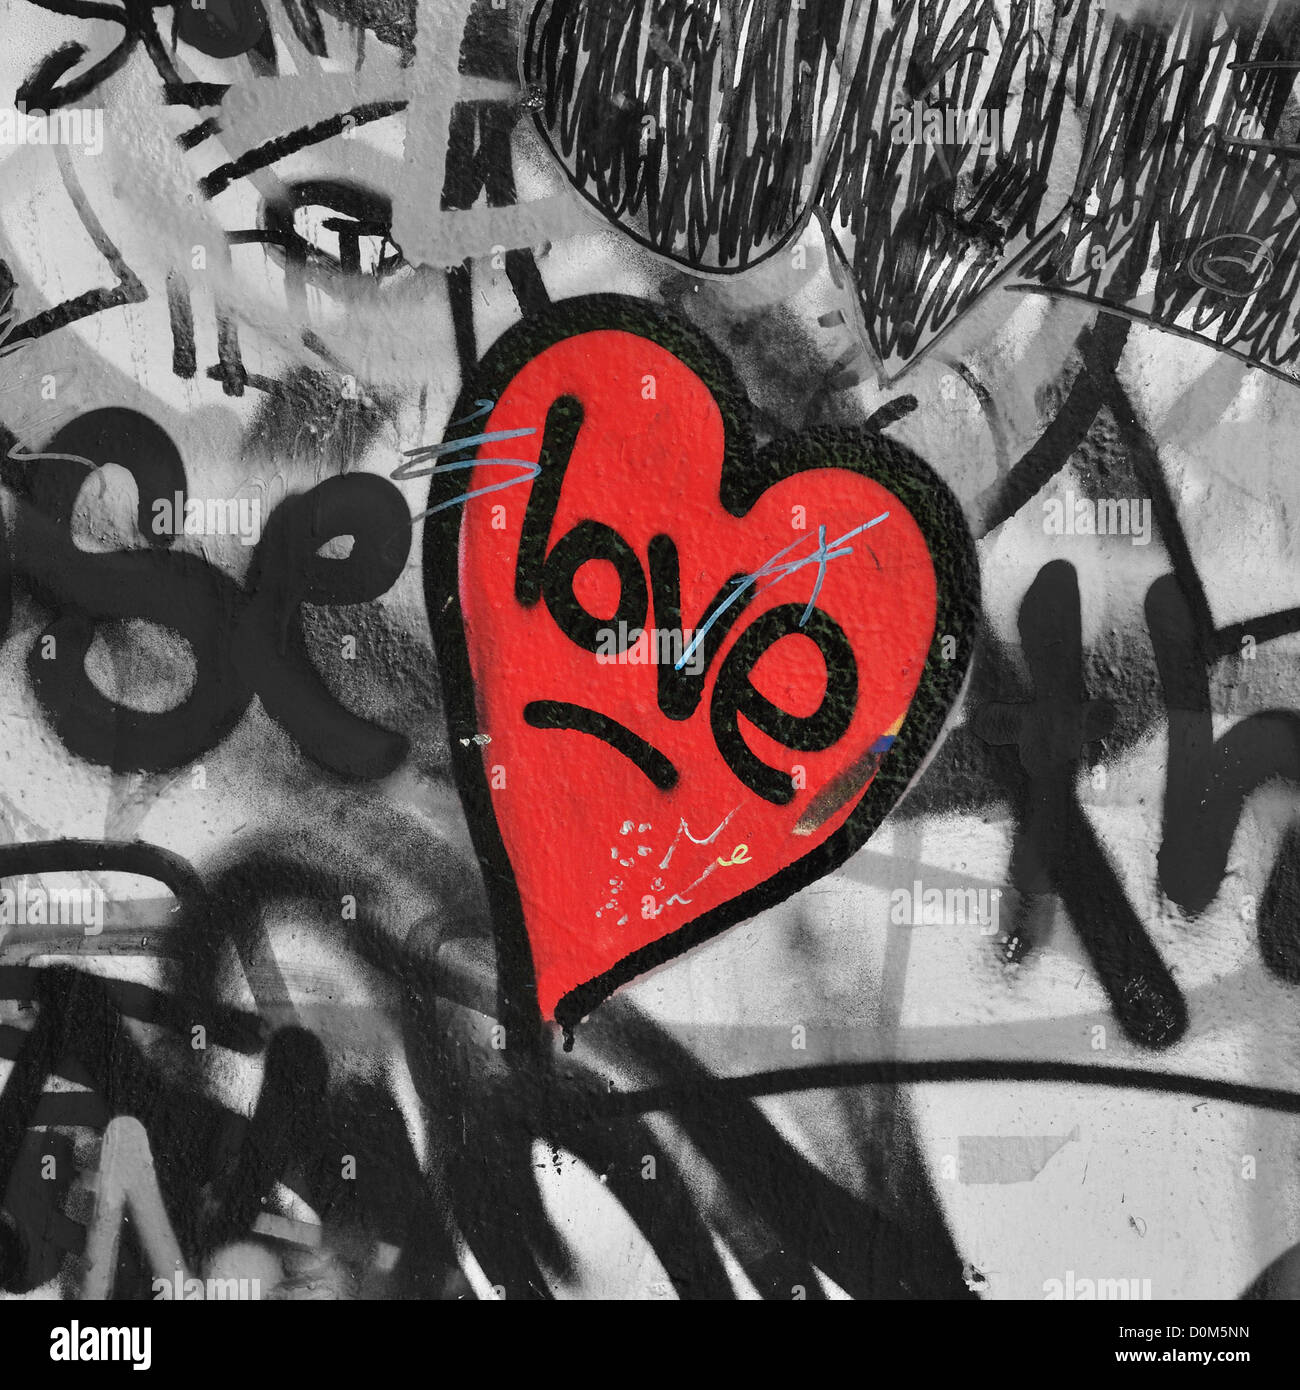 Red painted love heart on graffiti covered black and white wall background. Selective saturation. - Stock Image